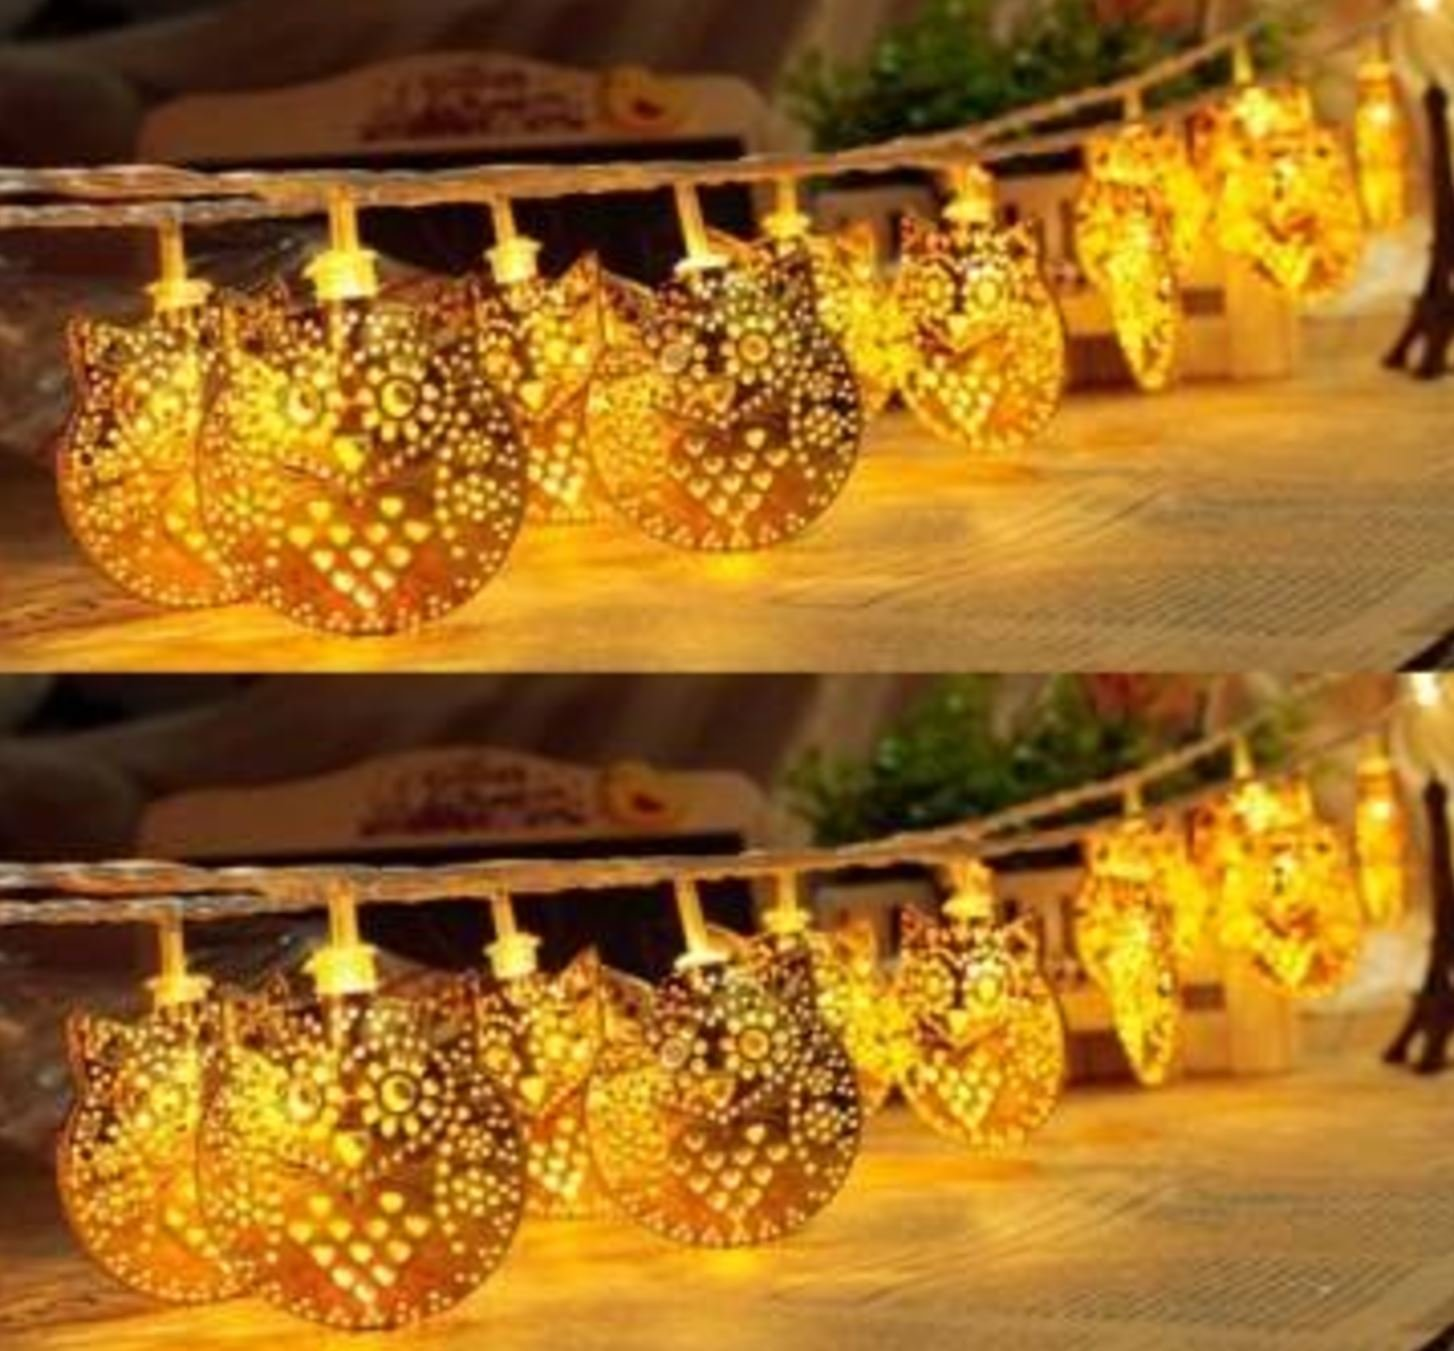 Color: Warm white # 10 LED Owl Party String Lights Outdoor Garden Christmas Wedding Decor by Superjune